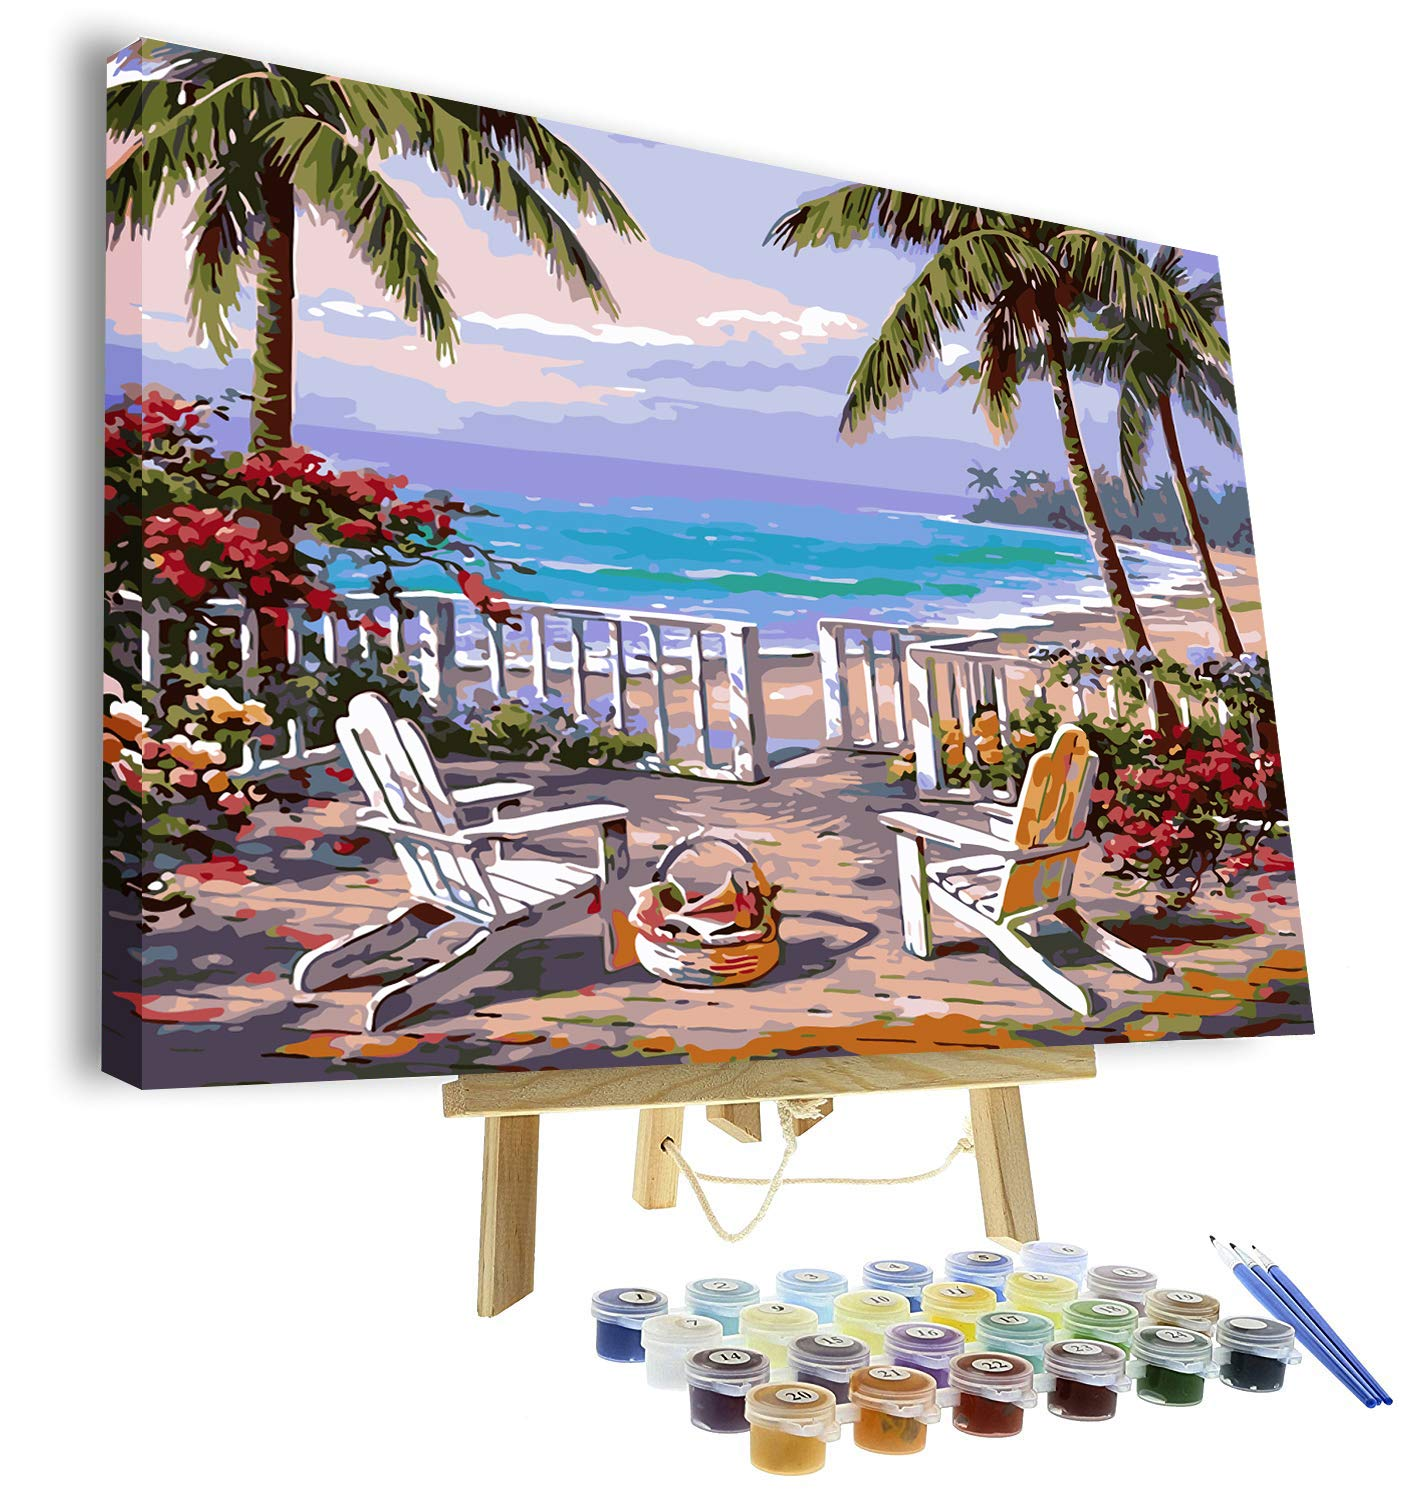 VIGEIYA DIY Paint by Numbers for Adults Include Framed Canvas and Wooden Easel with Brushes and Acrylic Pigment 15.7x19.6inch (Beach)